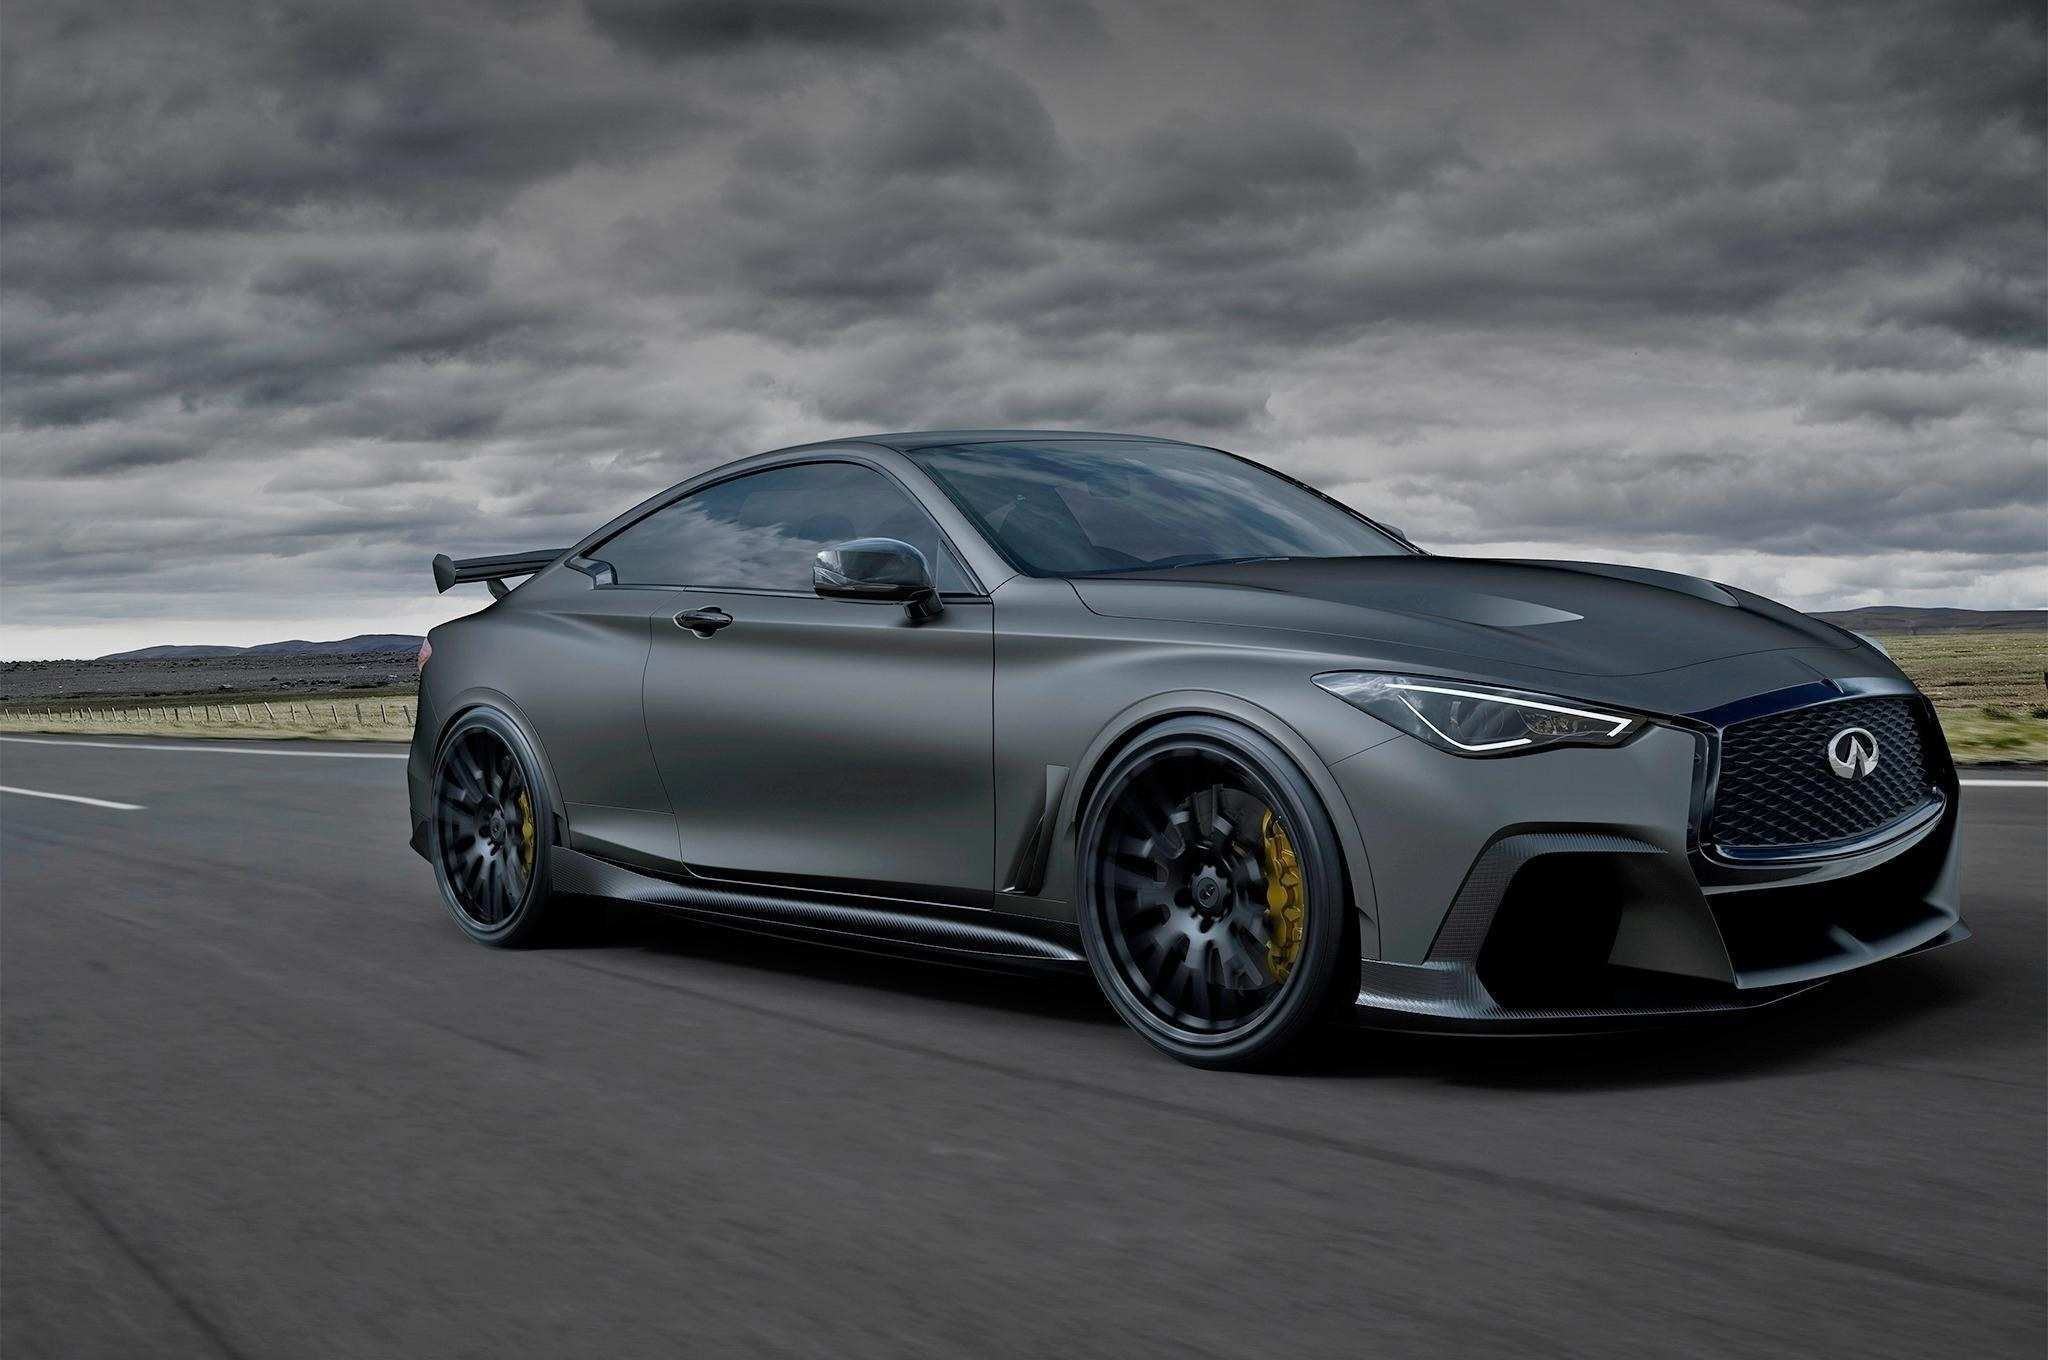 19 The 2019 Infiniti Q60 Coupe Ipl Price And Release Date